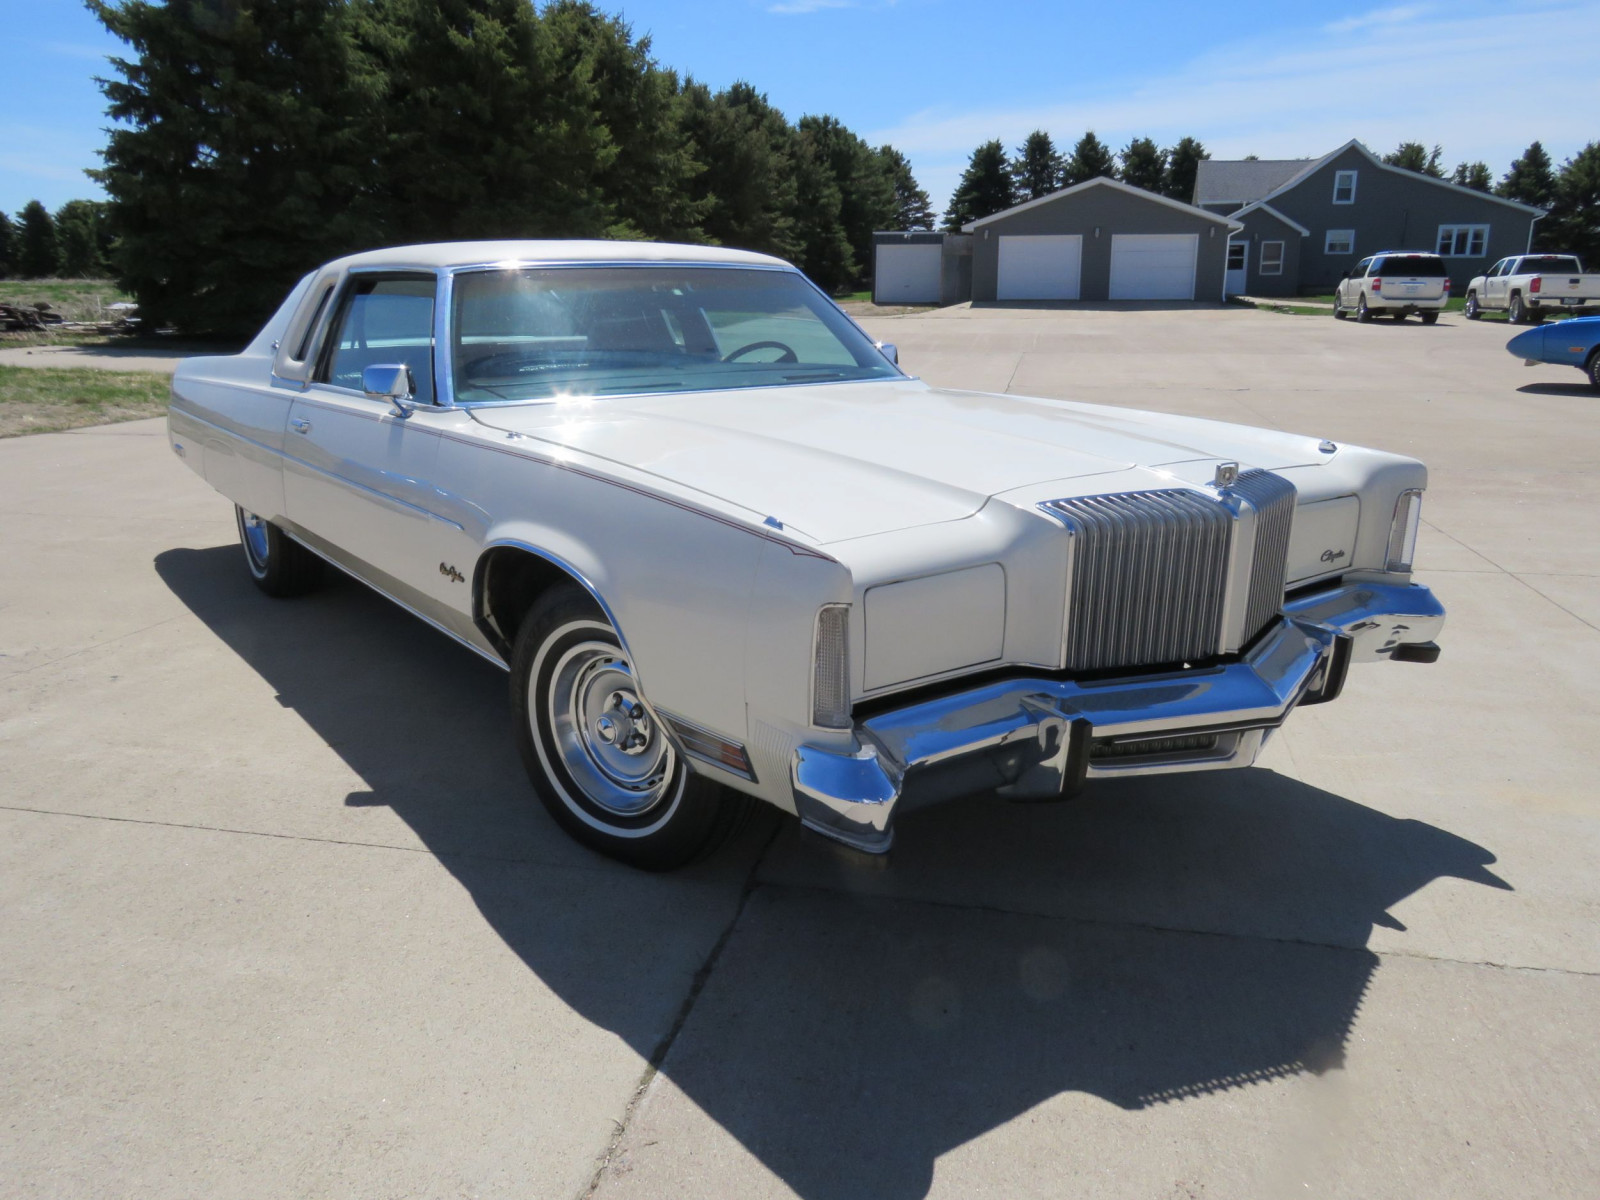 1977 Chrysler New Yorker Brougham 2dr Landau Coupe with ST. Regis - Image 1